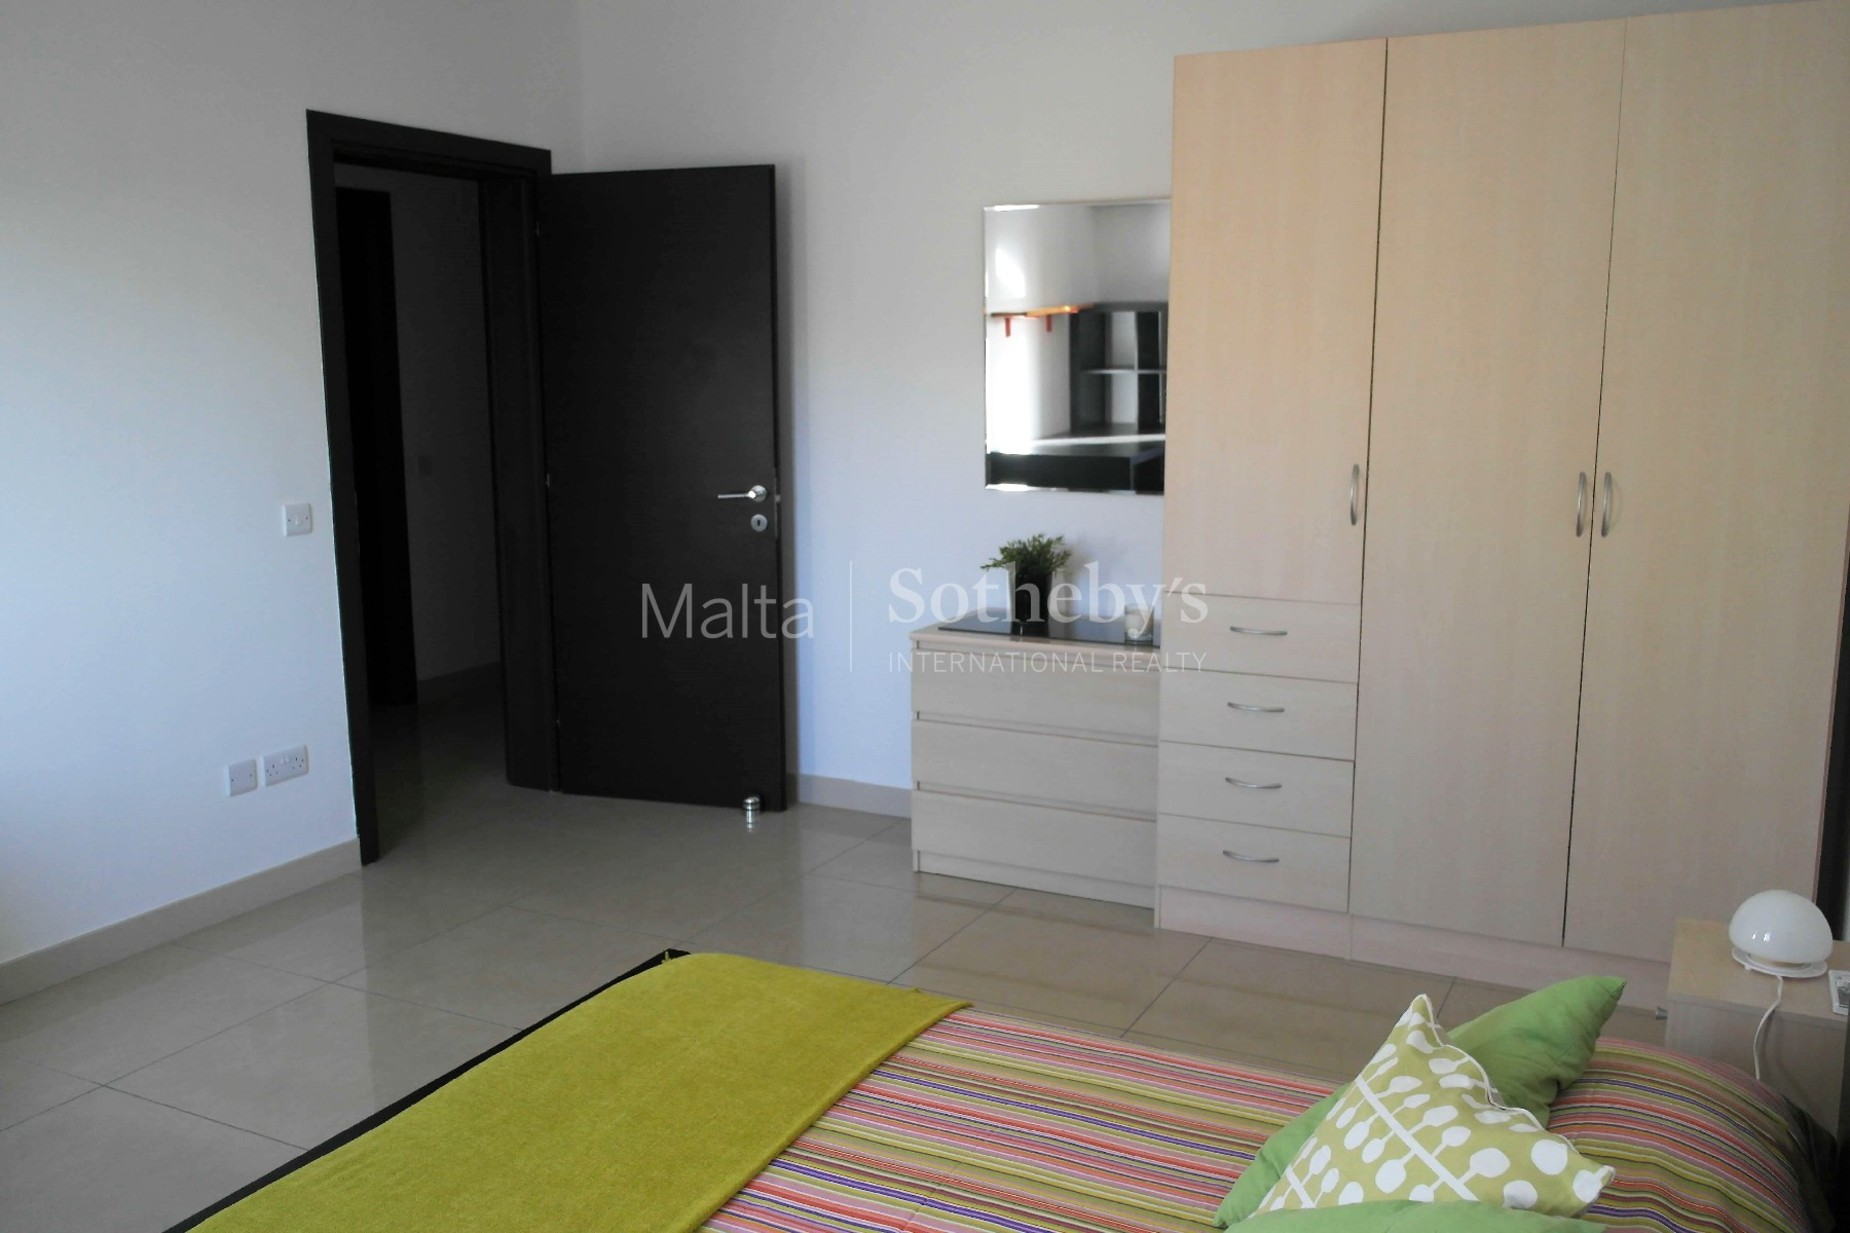 3 bed Apartment For Rent in Gzira, Gzira - thumb 12